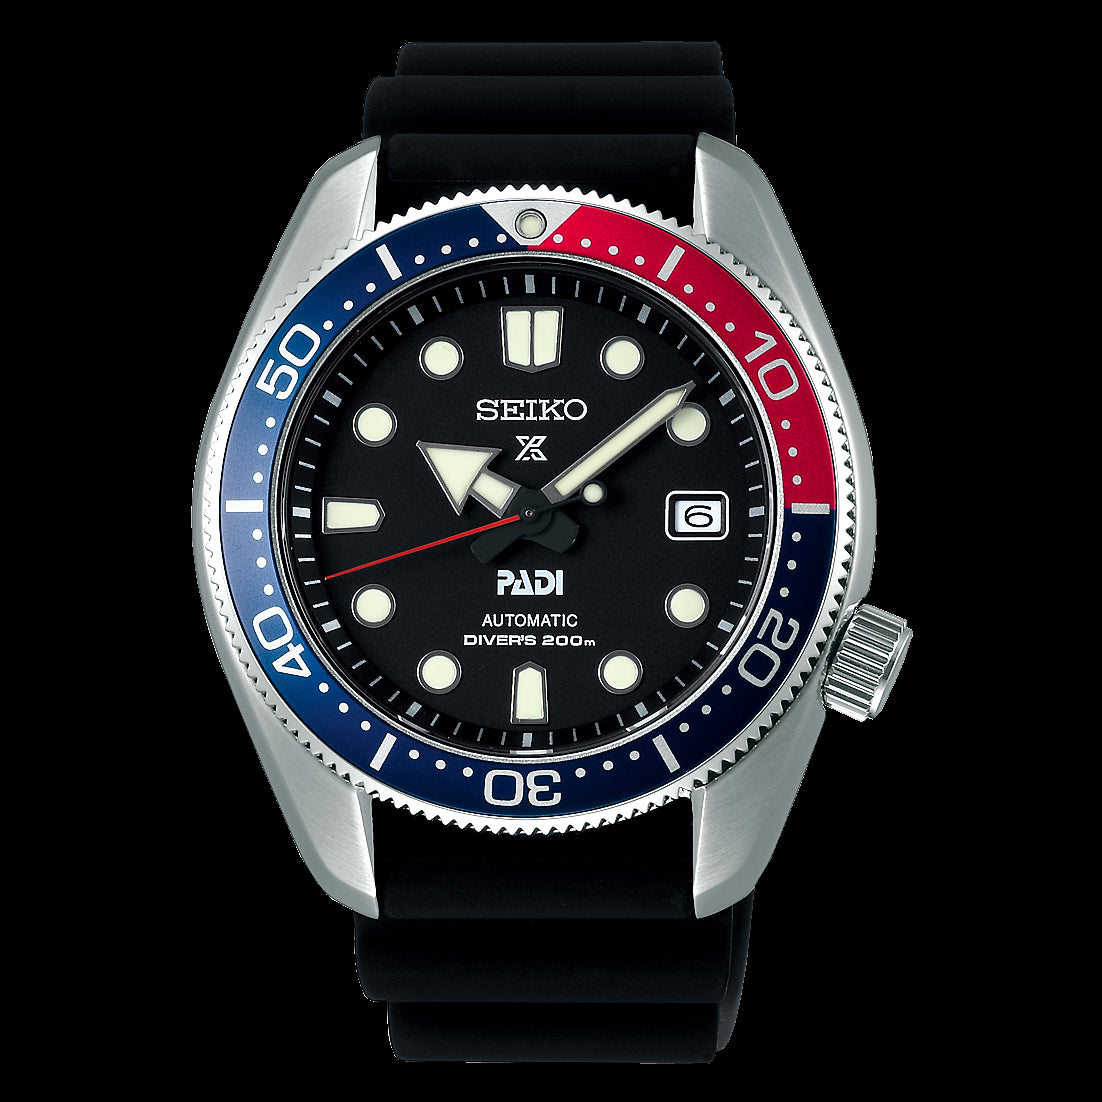 The Seiko Prospex PADI SPB087 Dive Watch